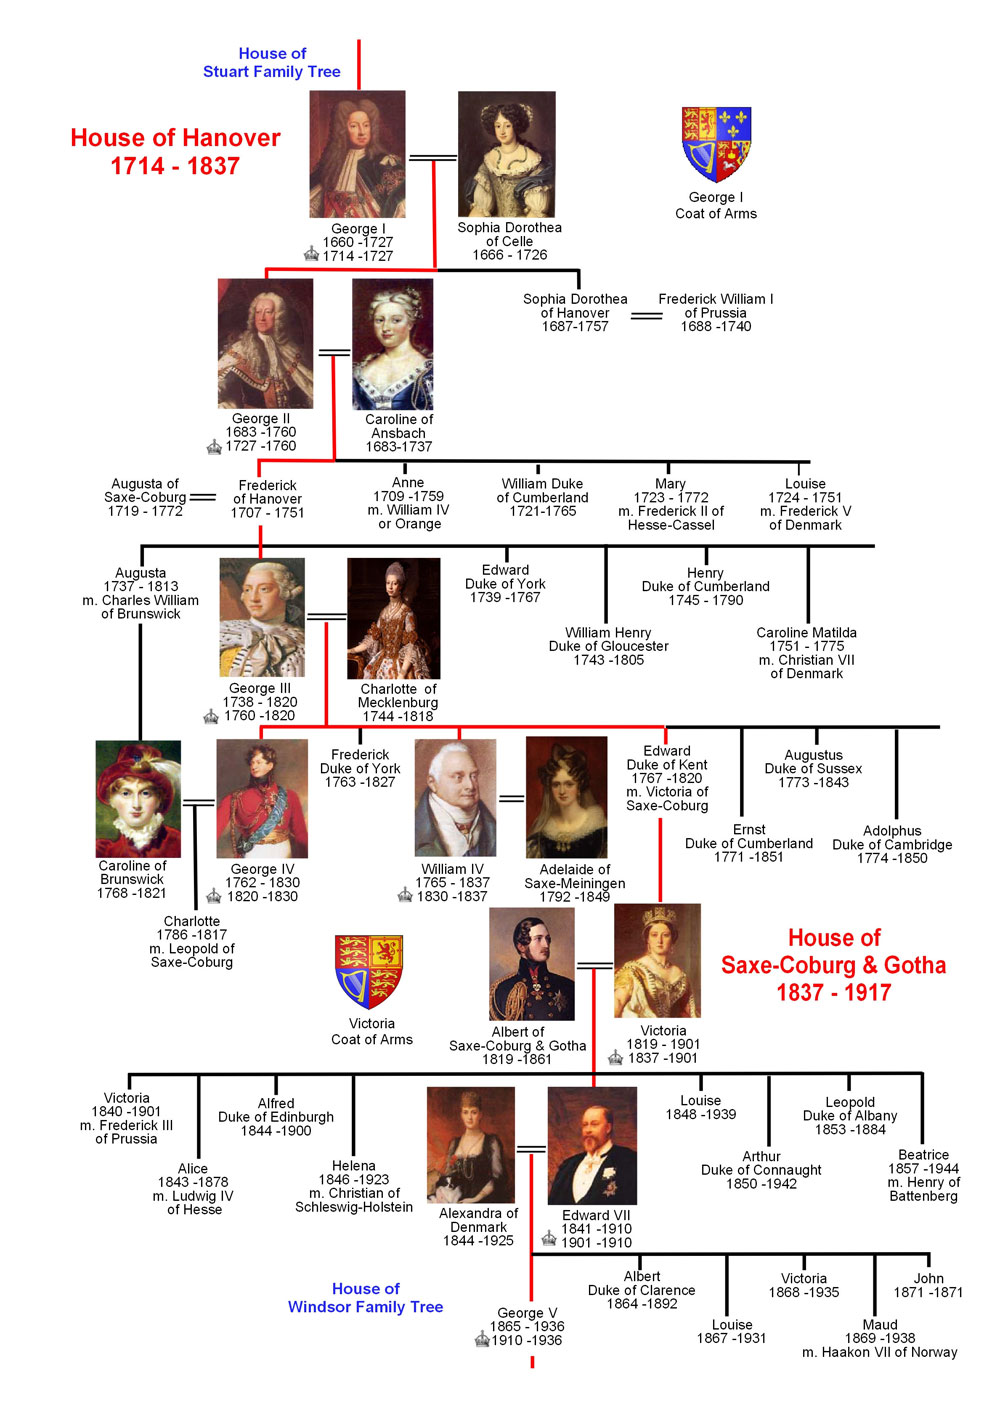 Jacobite family tree from http://www.britroyals.com/